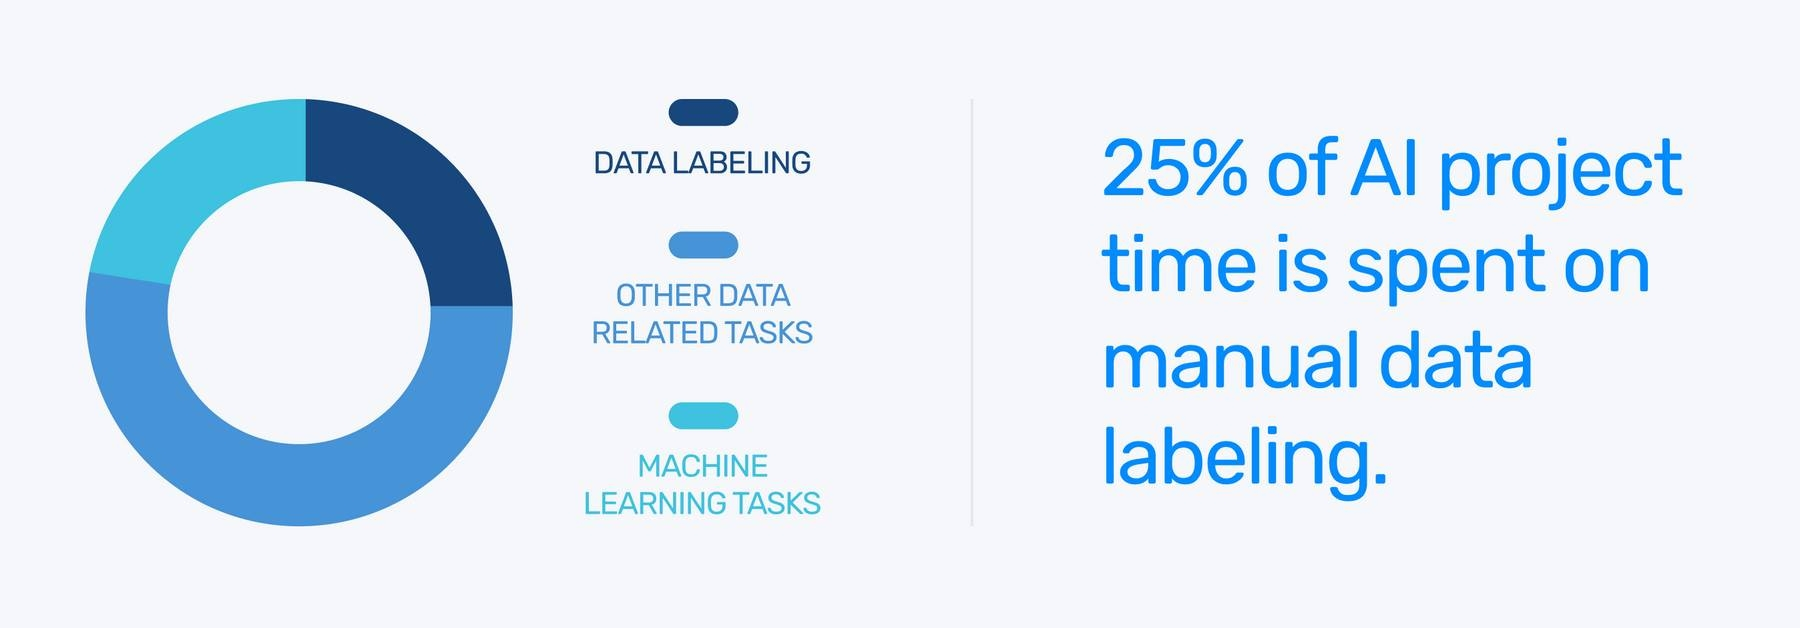 A graph showing how much time is spent on AI tasks: Data labeling (25%), other data related tasks (55%), machine learning tasks (20%)